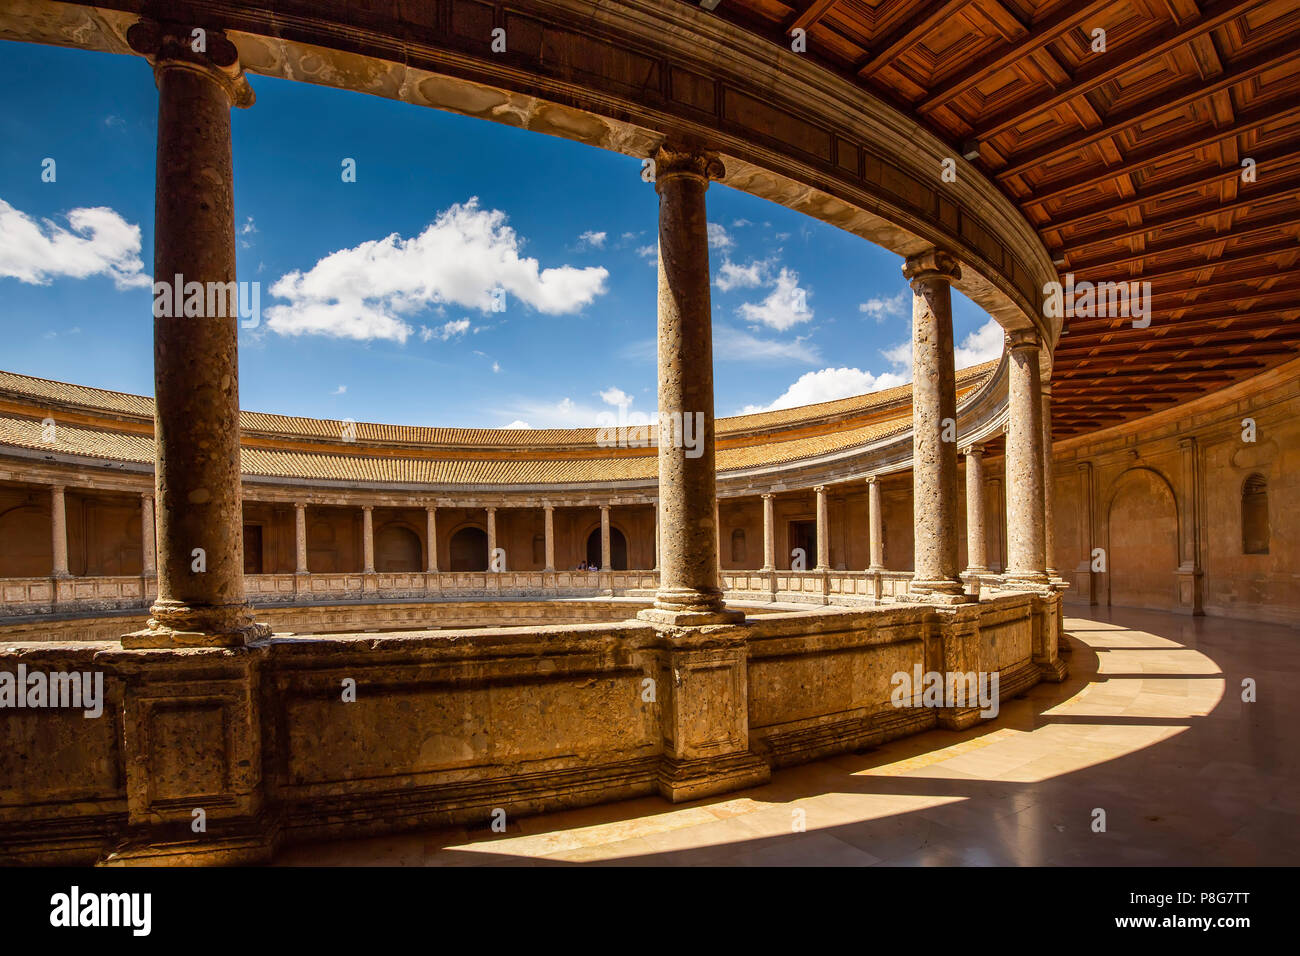 Inner circular courtyard. Palacio de Carlos V. Palace of Charles V. Alhambra, UNESCO World Heritage Site. Granada City. Andalusia, Southern Spain Euro Stock Photo